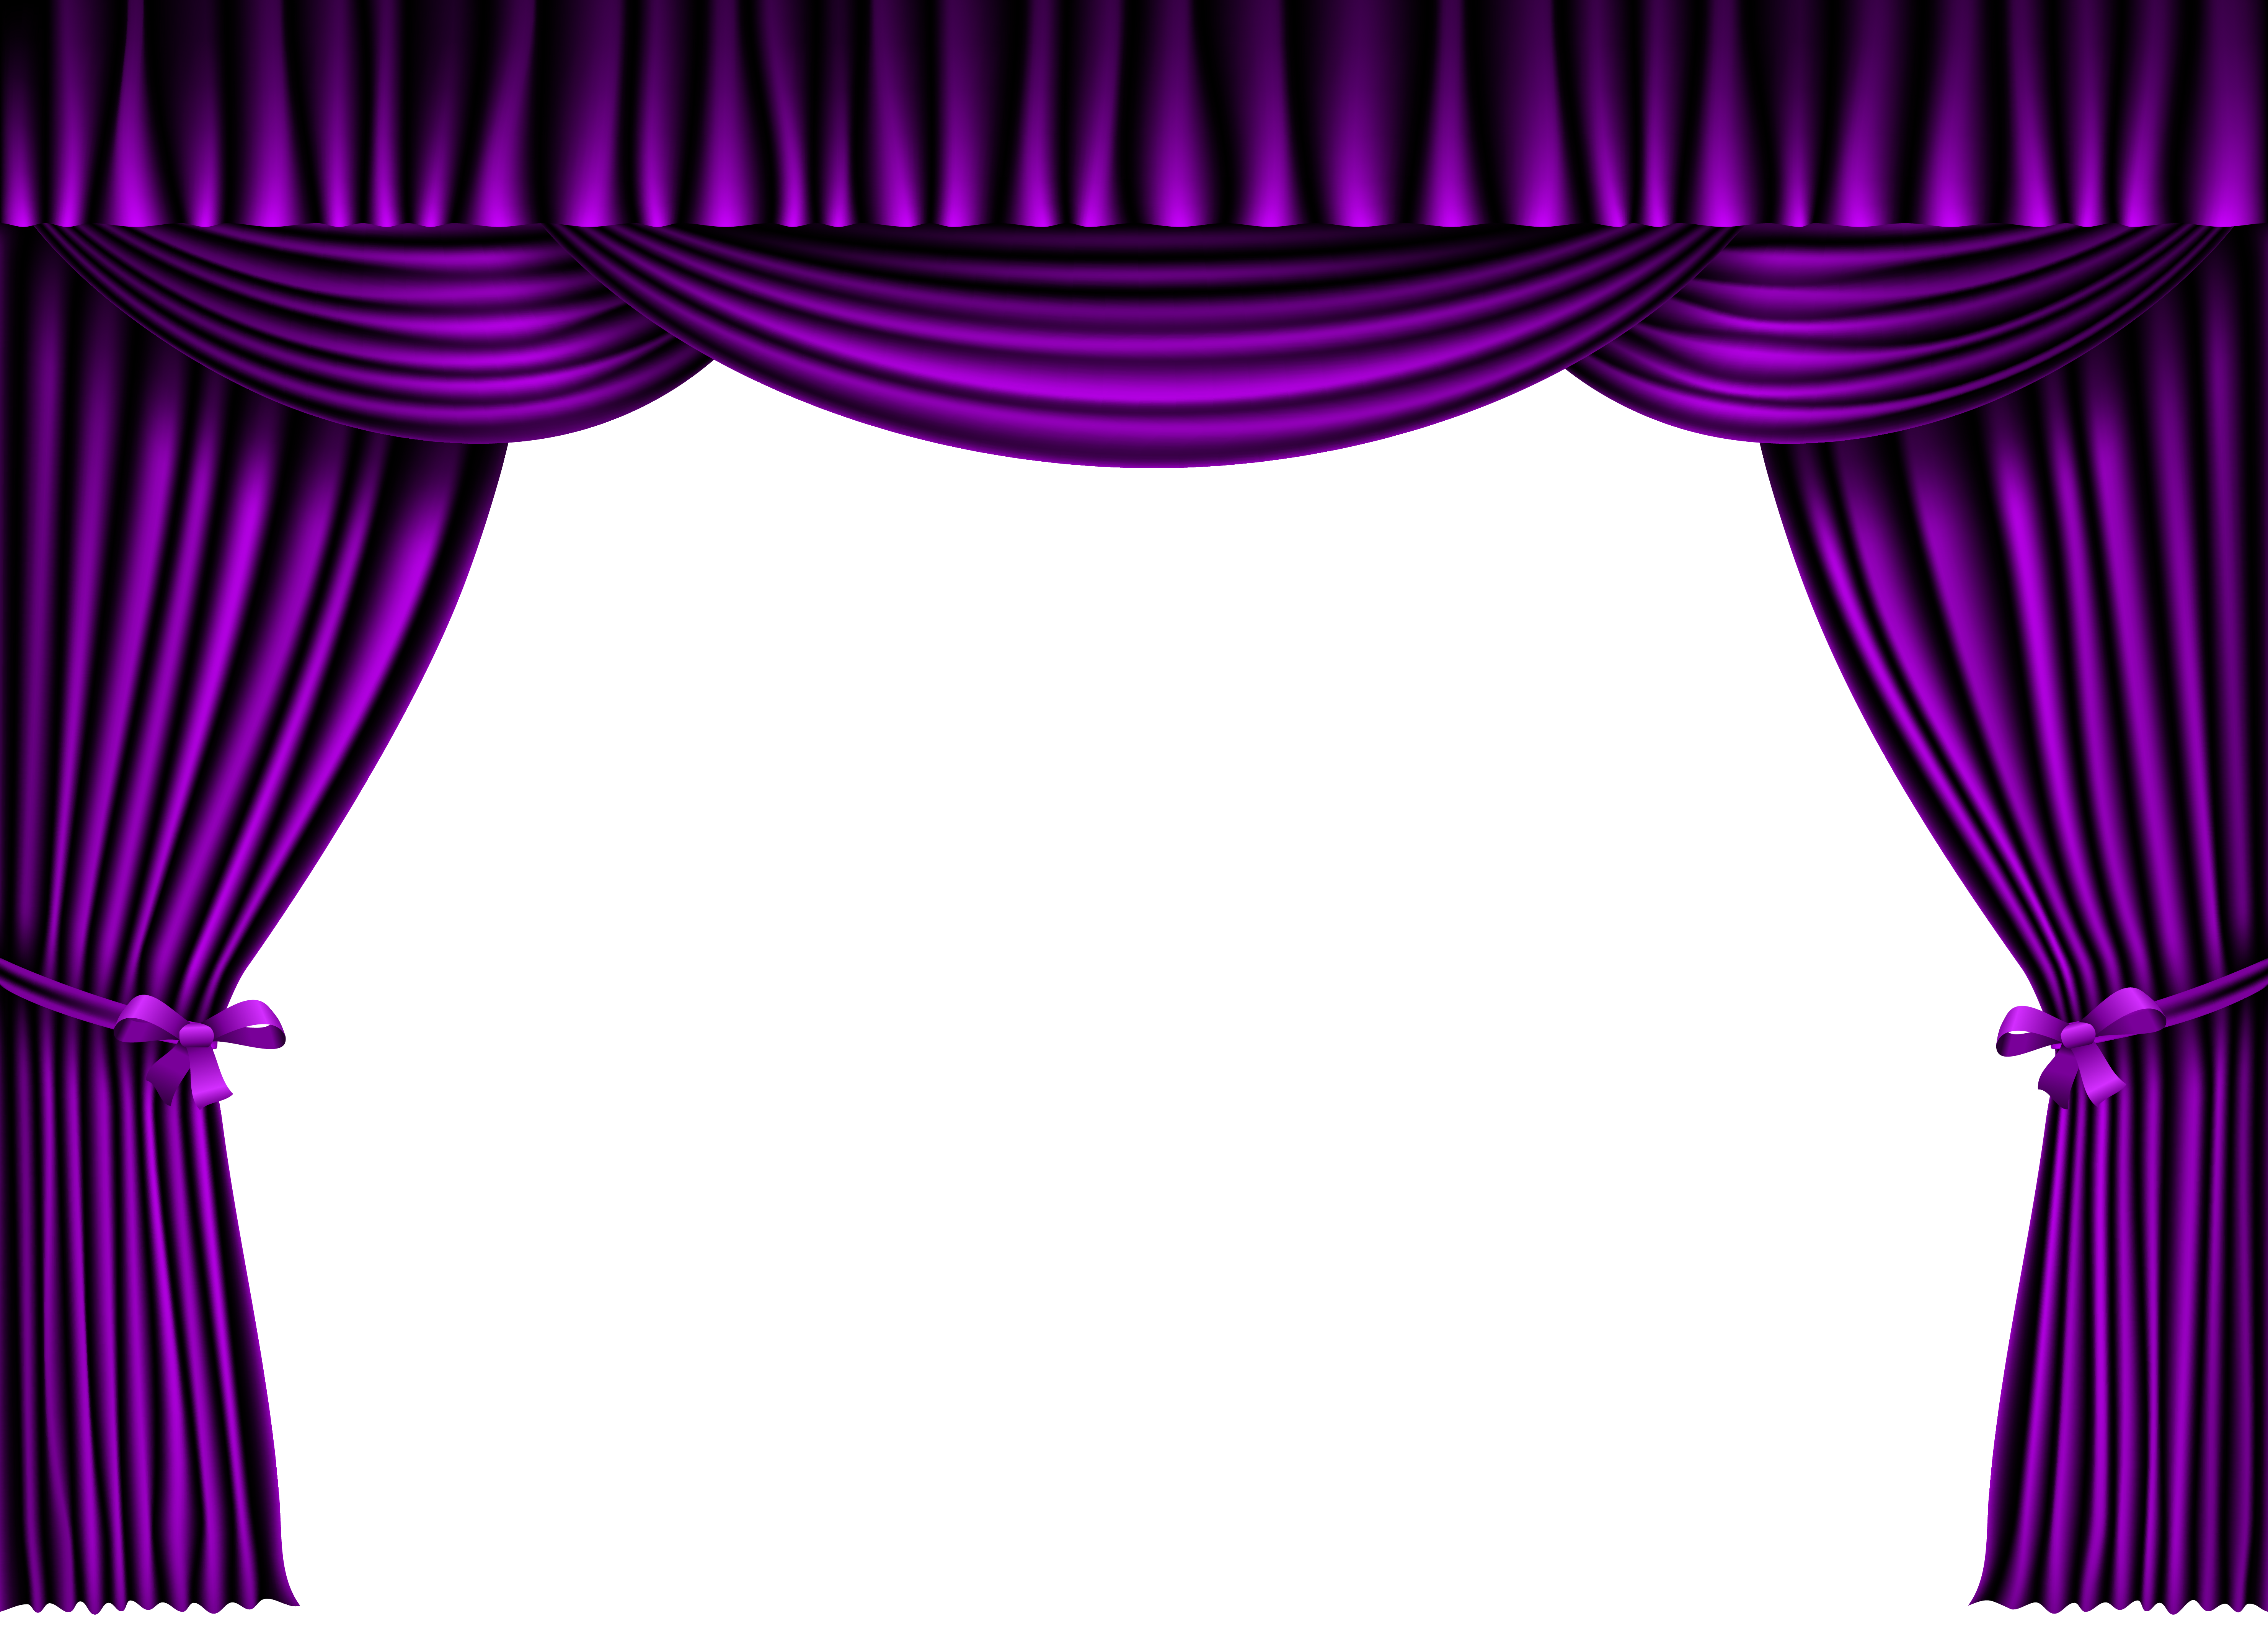 Pink clipart cabinet. Purple curtain png image